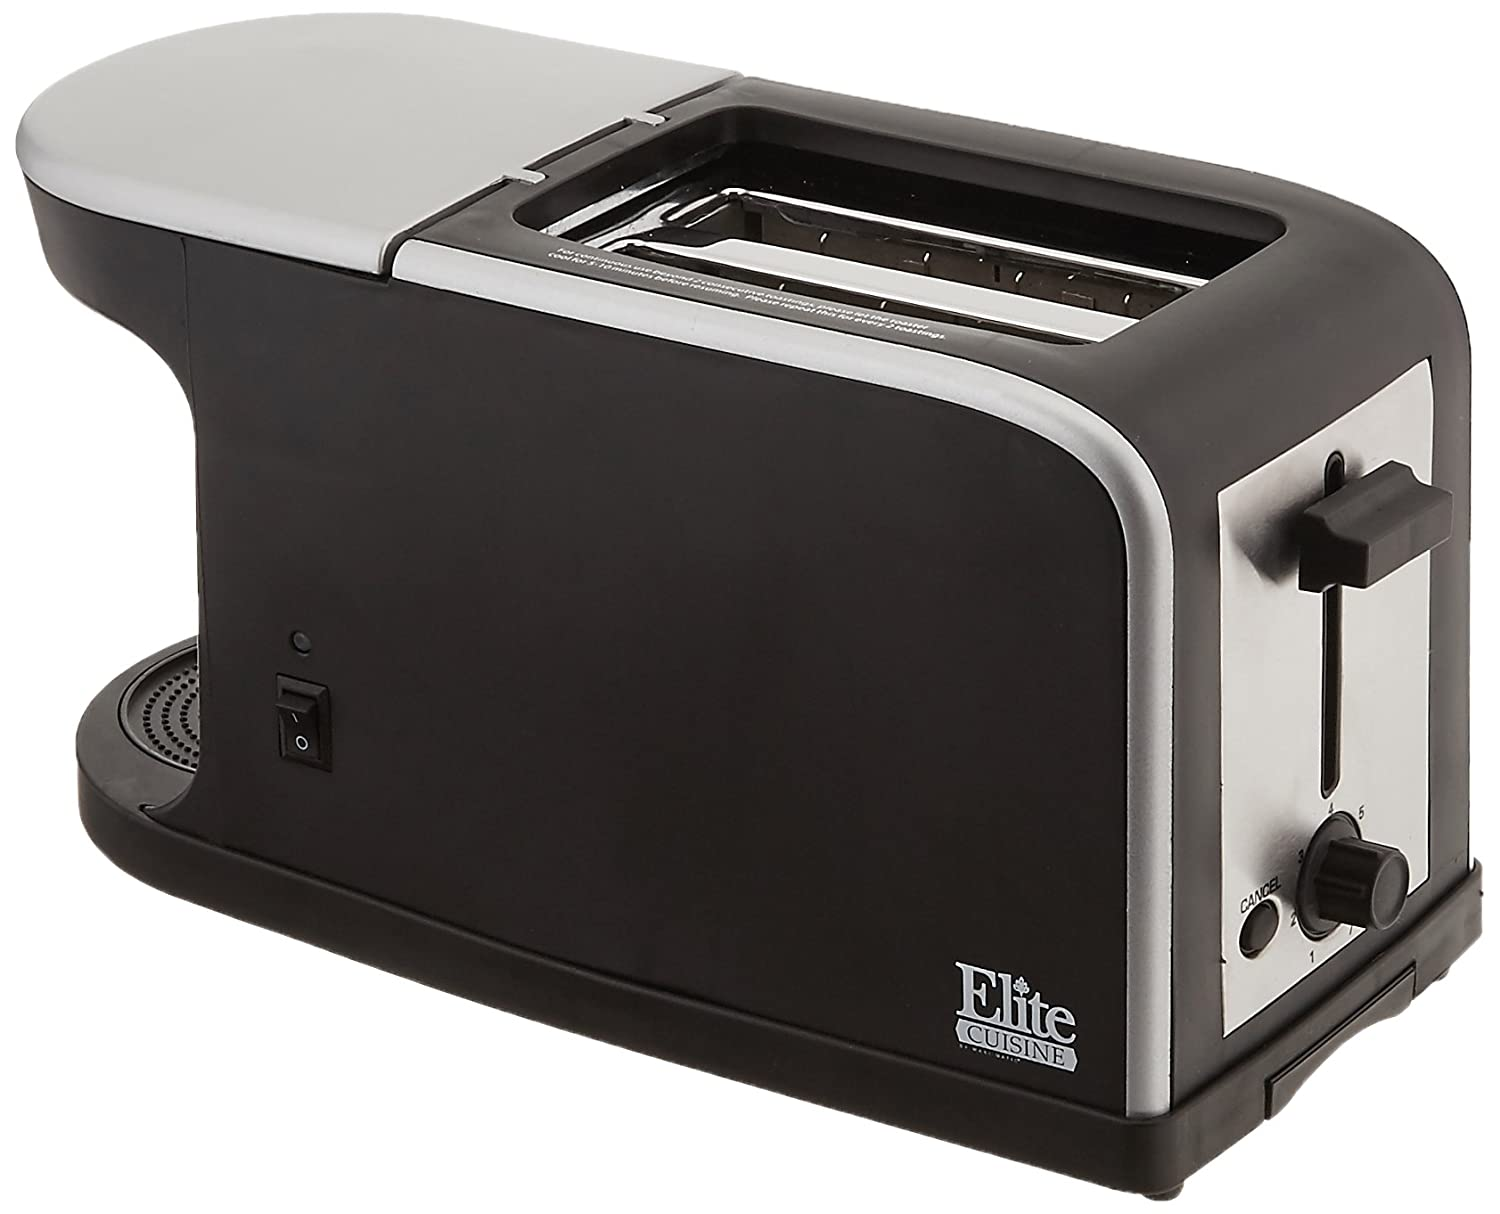 Elite Cuisine ECT-819 Maxi-Matic 2-in-1 Dual Function Breakfast Station Toaster and Coffee, Black